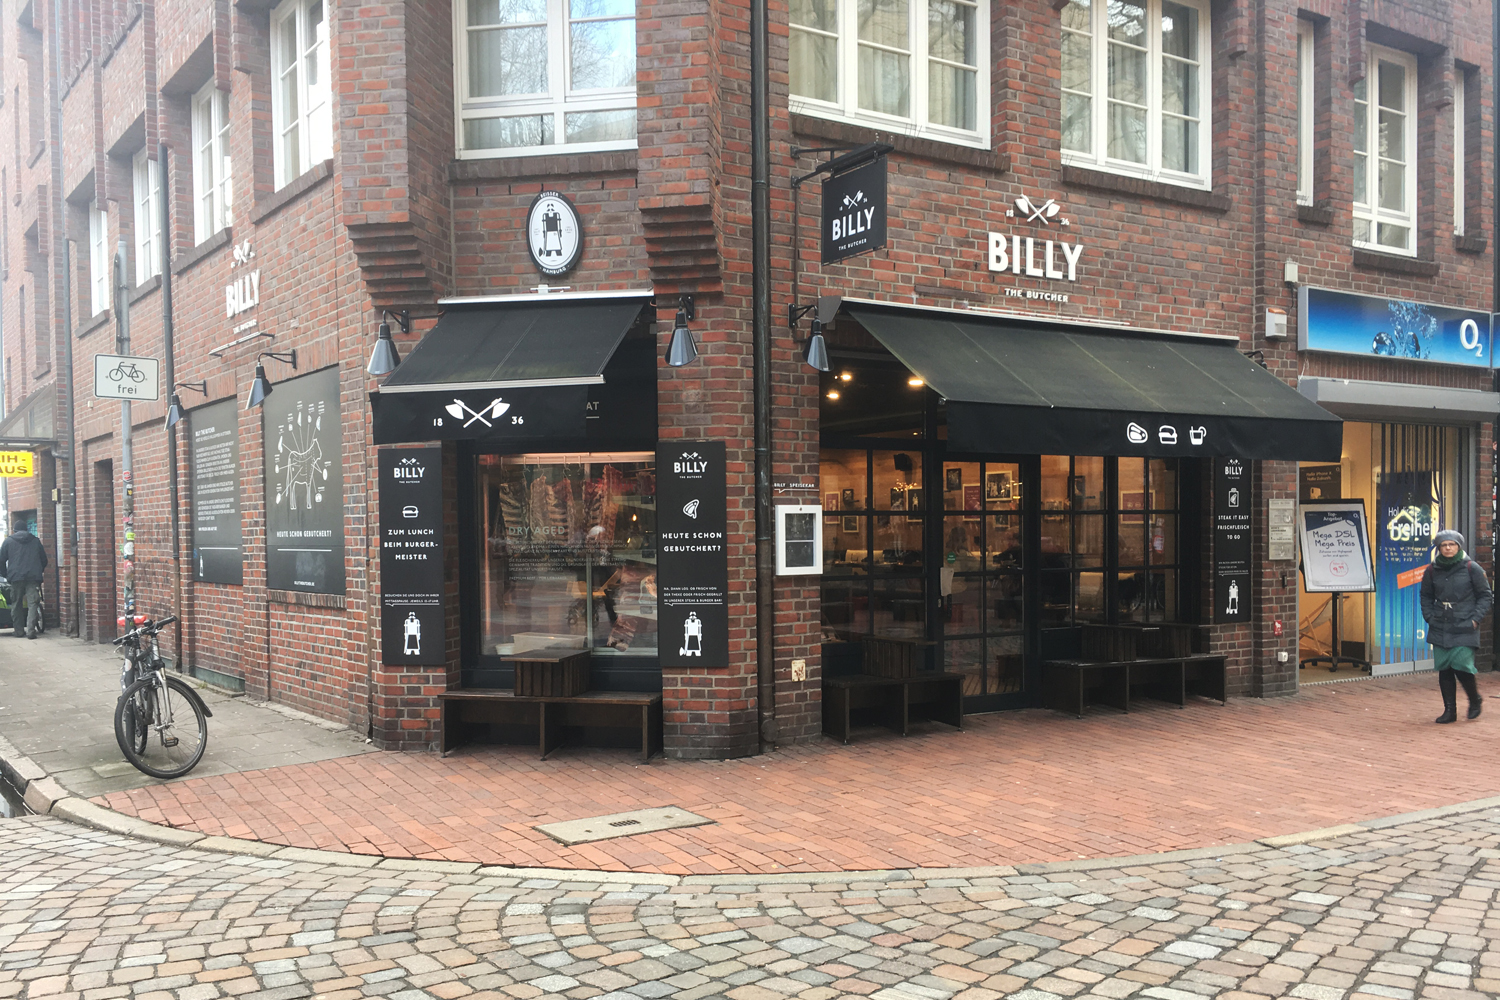 Billy the Butcher Hamburg